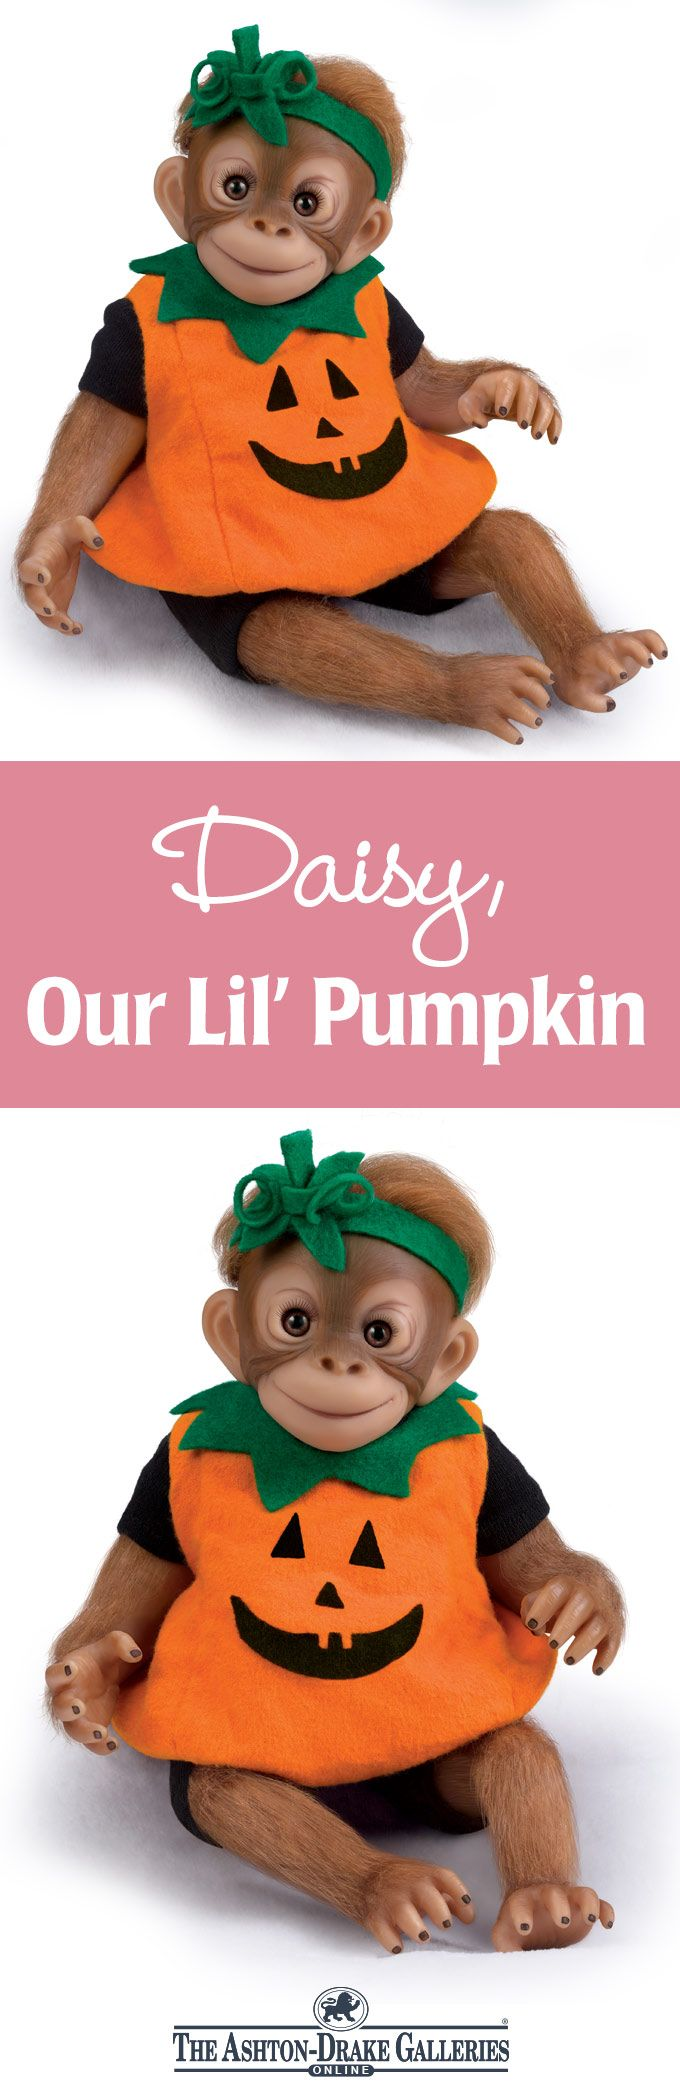 There's a Daisy in the pumpkin patch! This lifelike monkey doll by Master Doll Artist Amy Ferreria arrives in a plush pumpkin costume with green felt collar and matching headband. From her big brown eyes to her hand-applied hair, Daisy is a real treat! Shop Now!